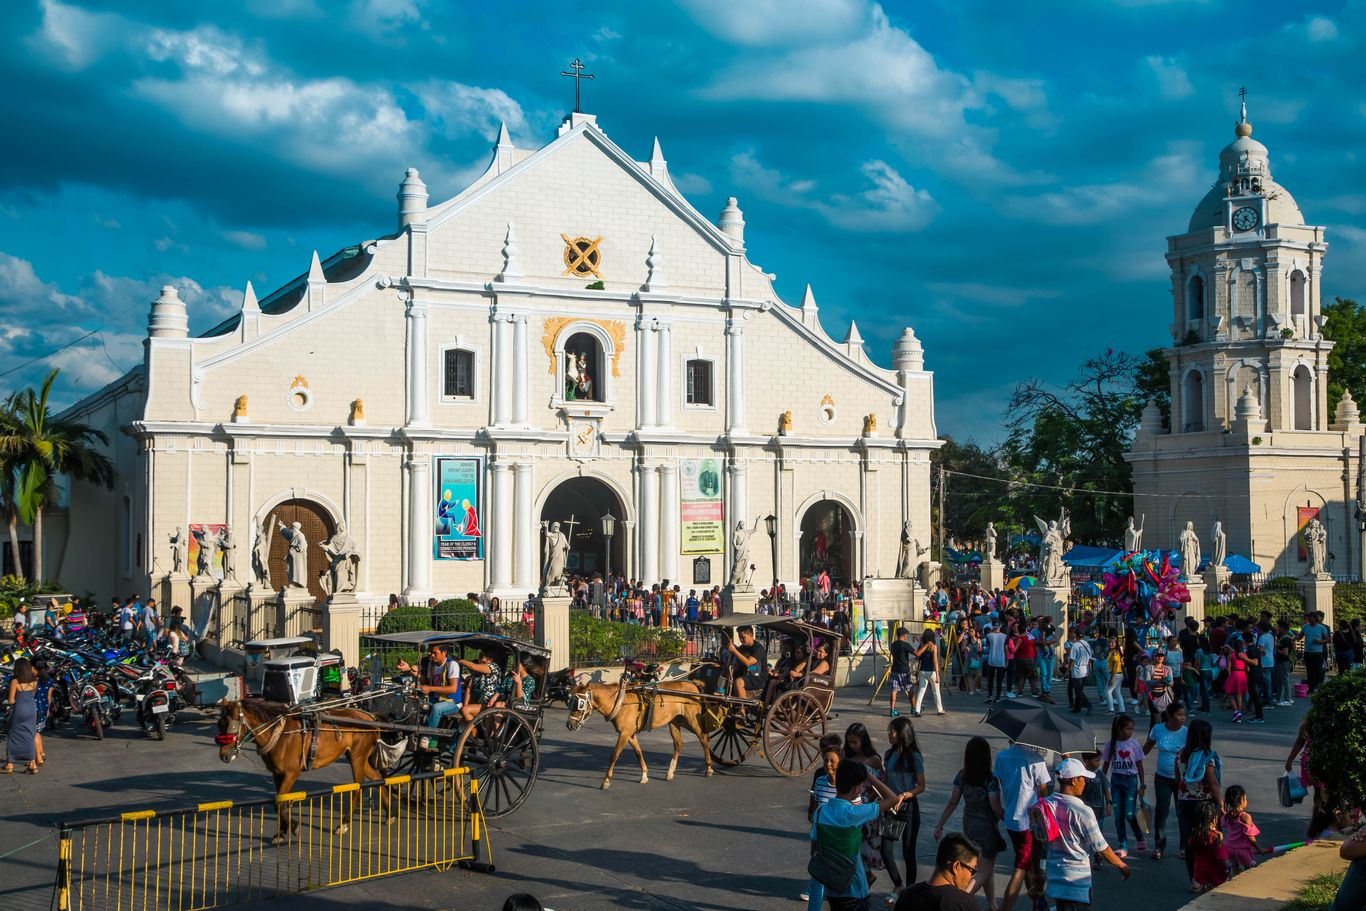 A couple of horse-drawn carriages and a crowd of people pass by a stone church with a white facade and a white bell tower in the Historic City of Vigan, one of the UNESCO World Heritage Sites in the Philippines